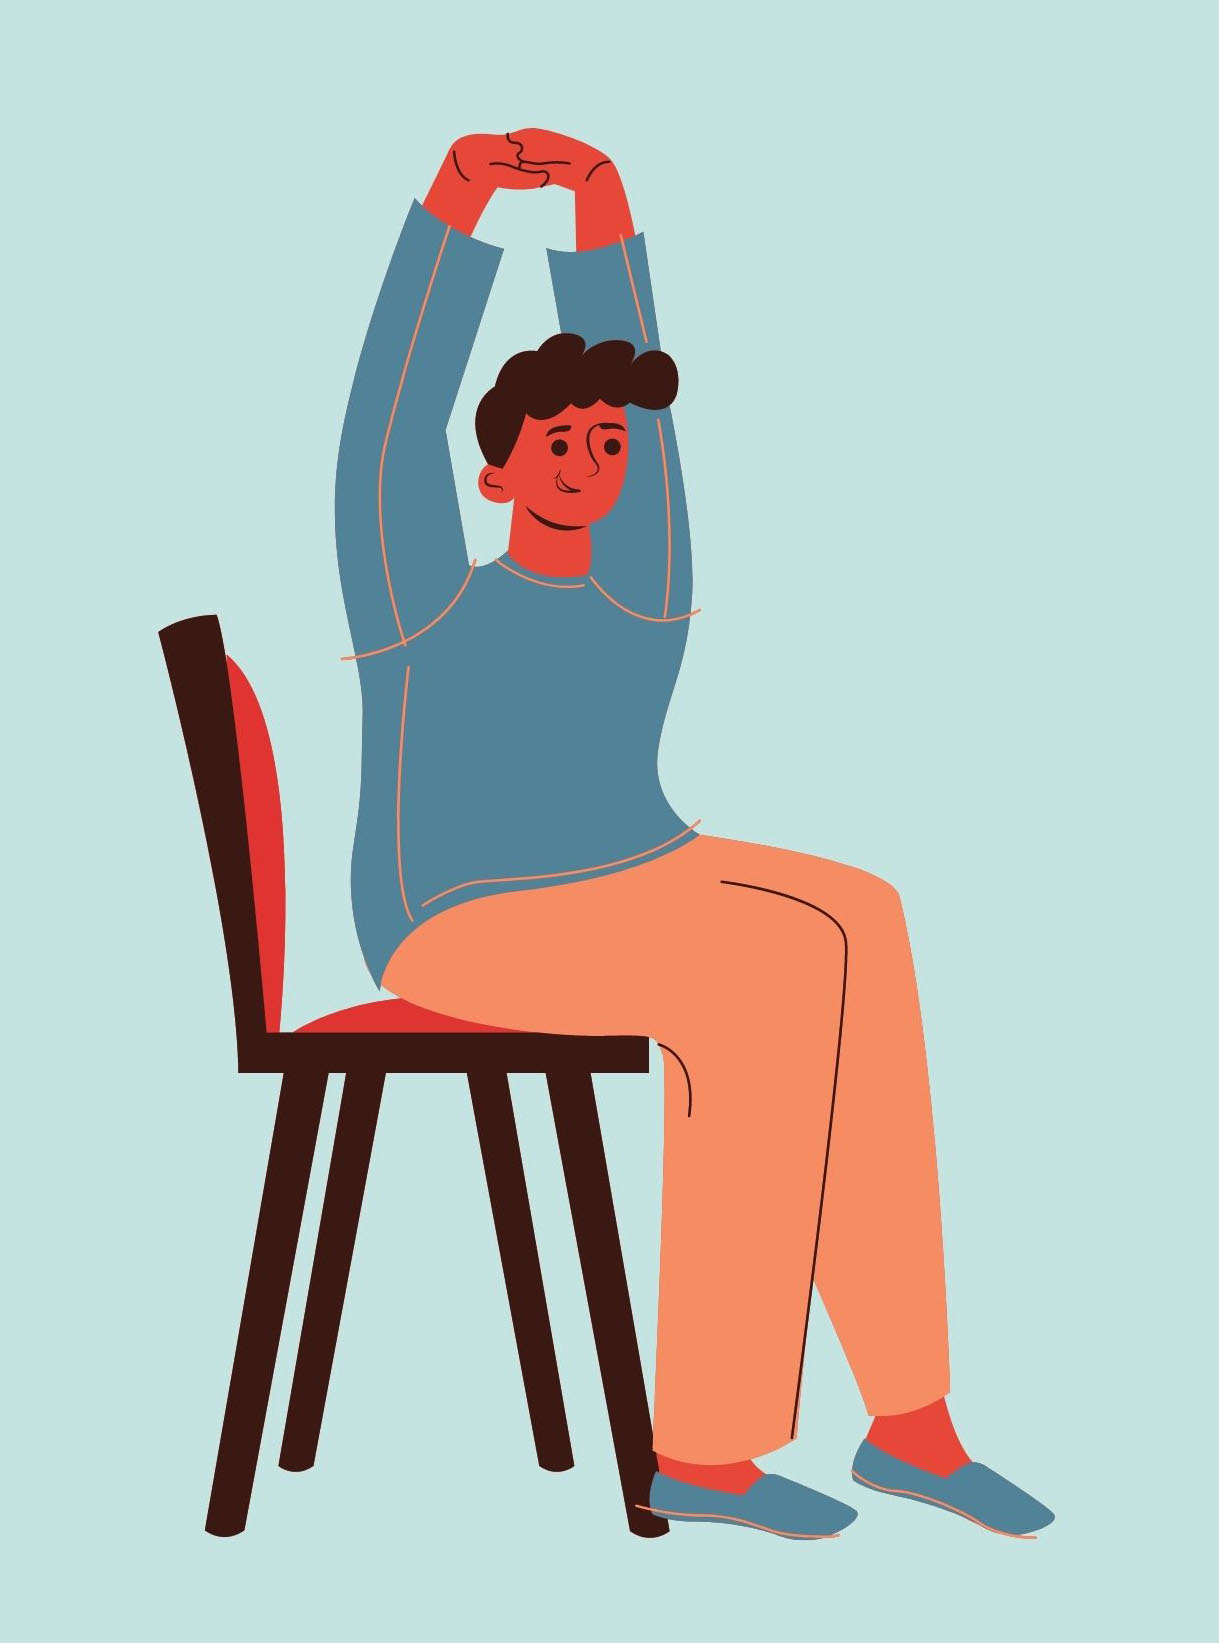 (Virtual) Chair Yoga